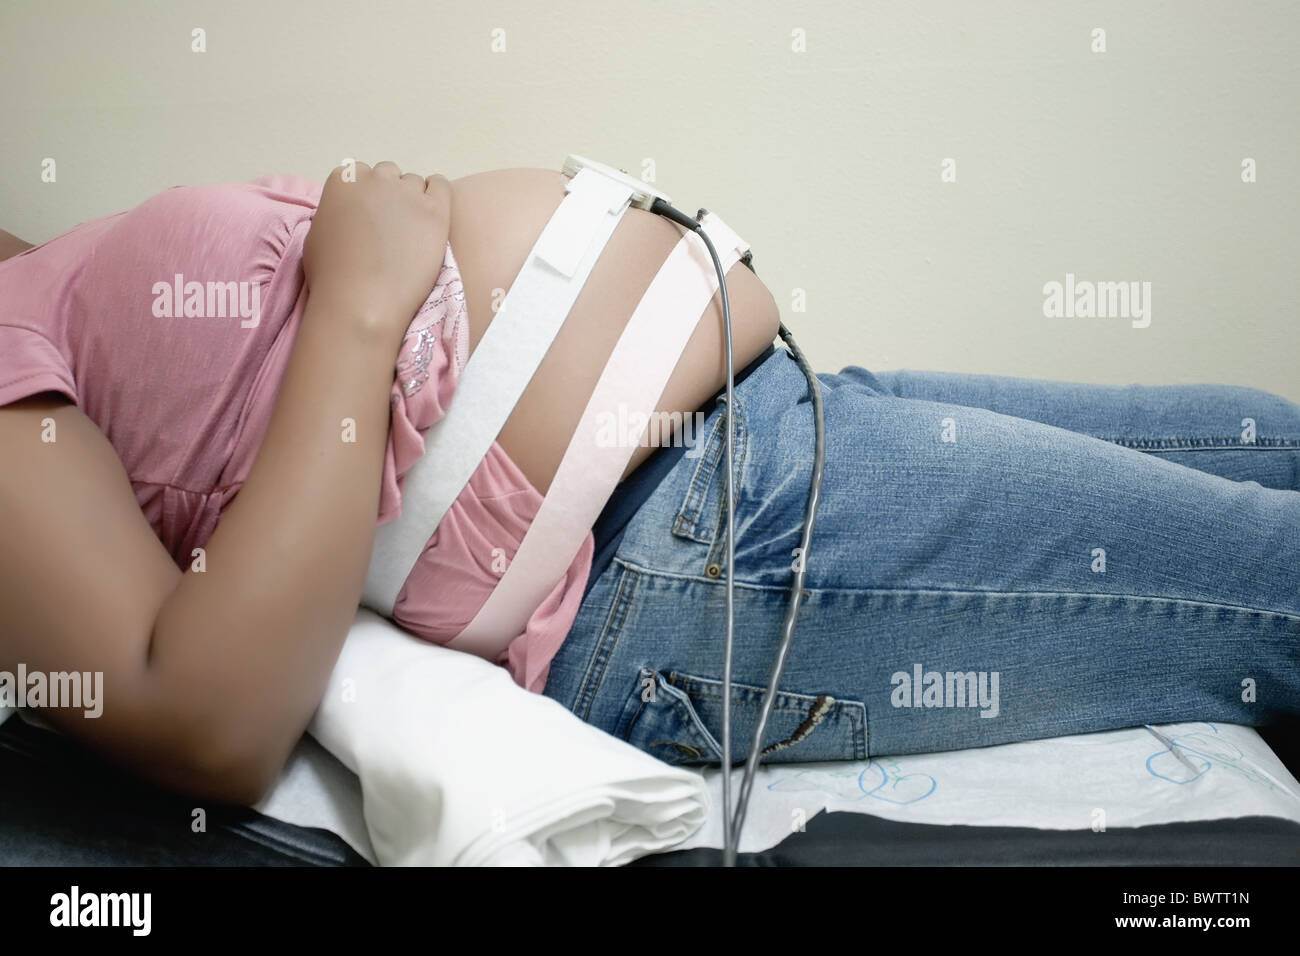 pregnant mother having baby monitor examination and laying down at doctor's office - Stock Image